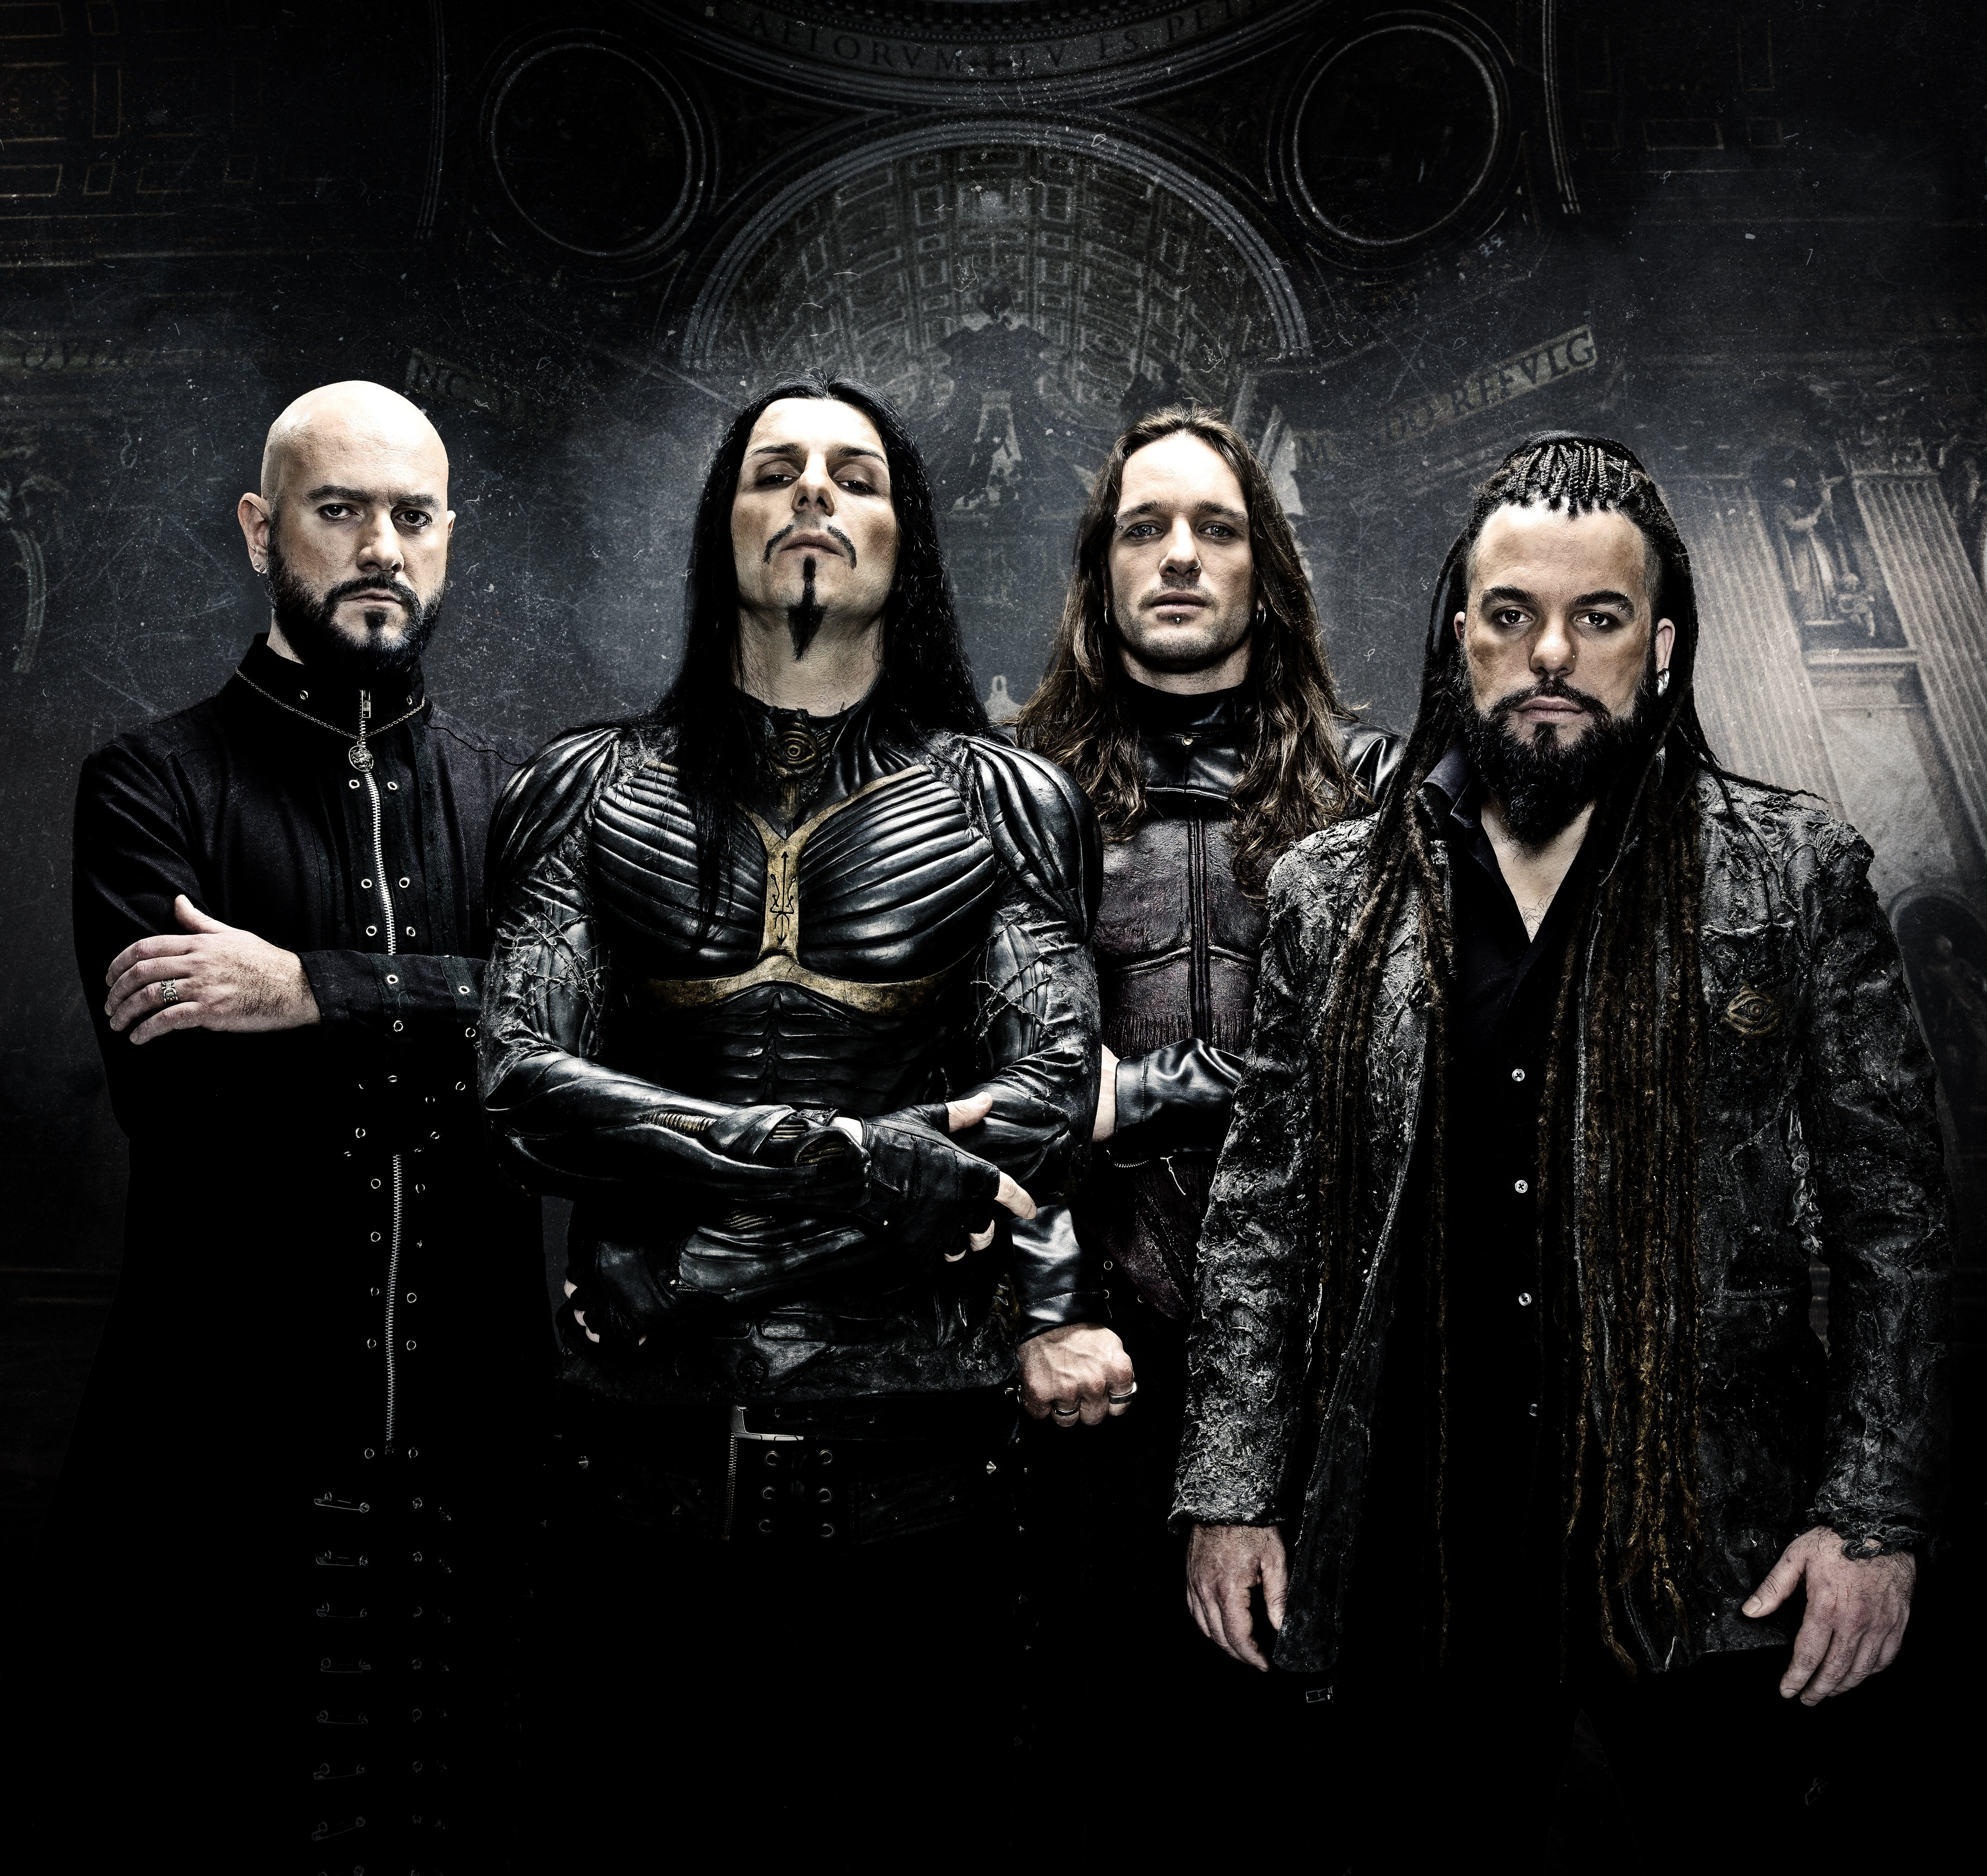 Septicflesh Backgrounds on Wallpapers Vista